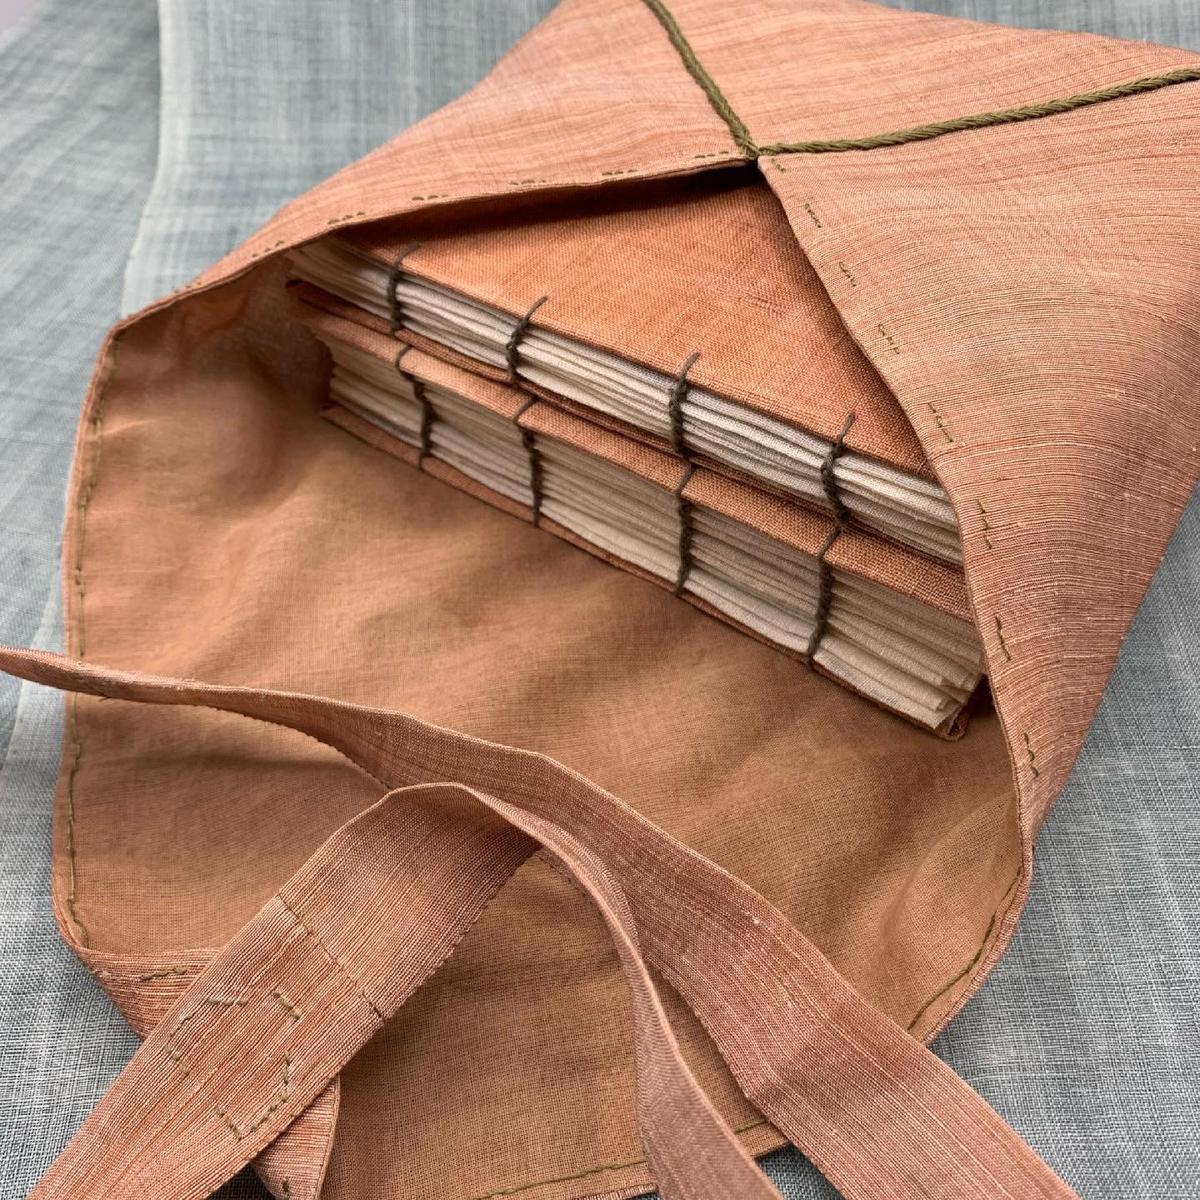 Bojagi Stitch Sample Books   Traditional Korean Textile Arts With Youngmin Lee on the Megan Nielsen Patterns Blog